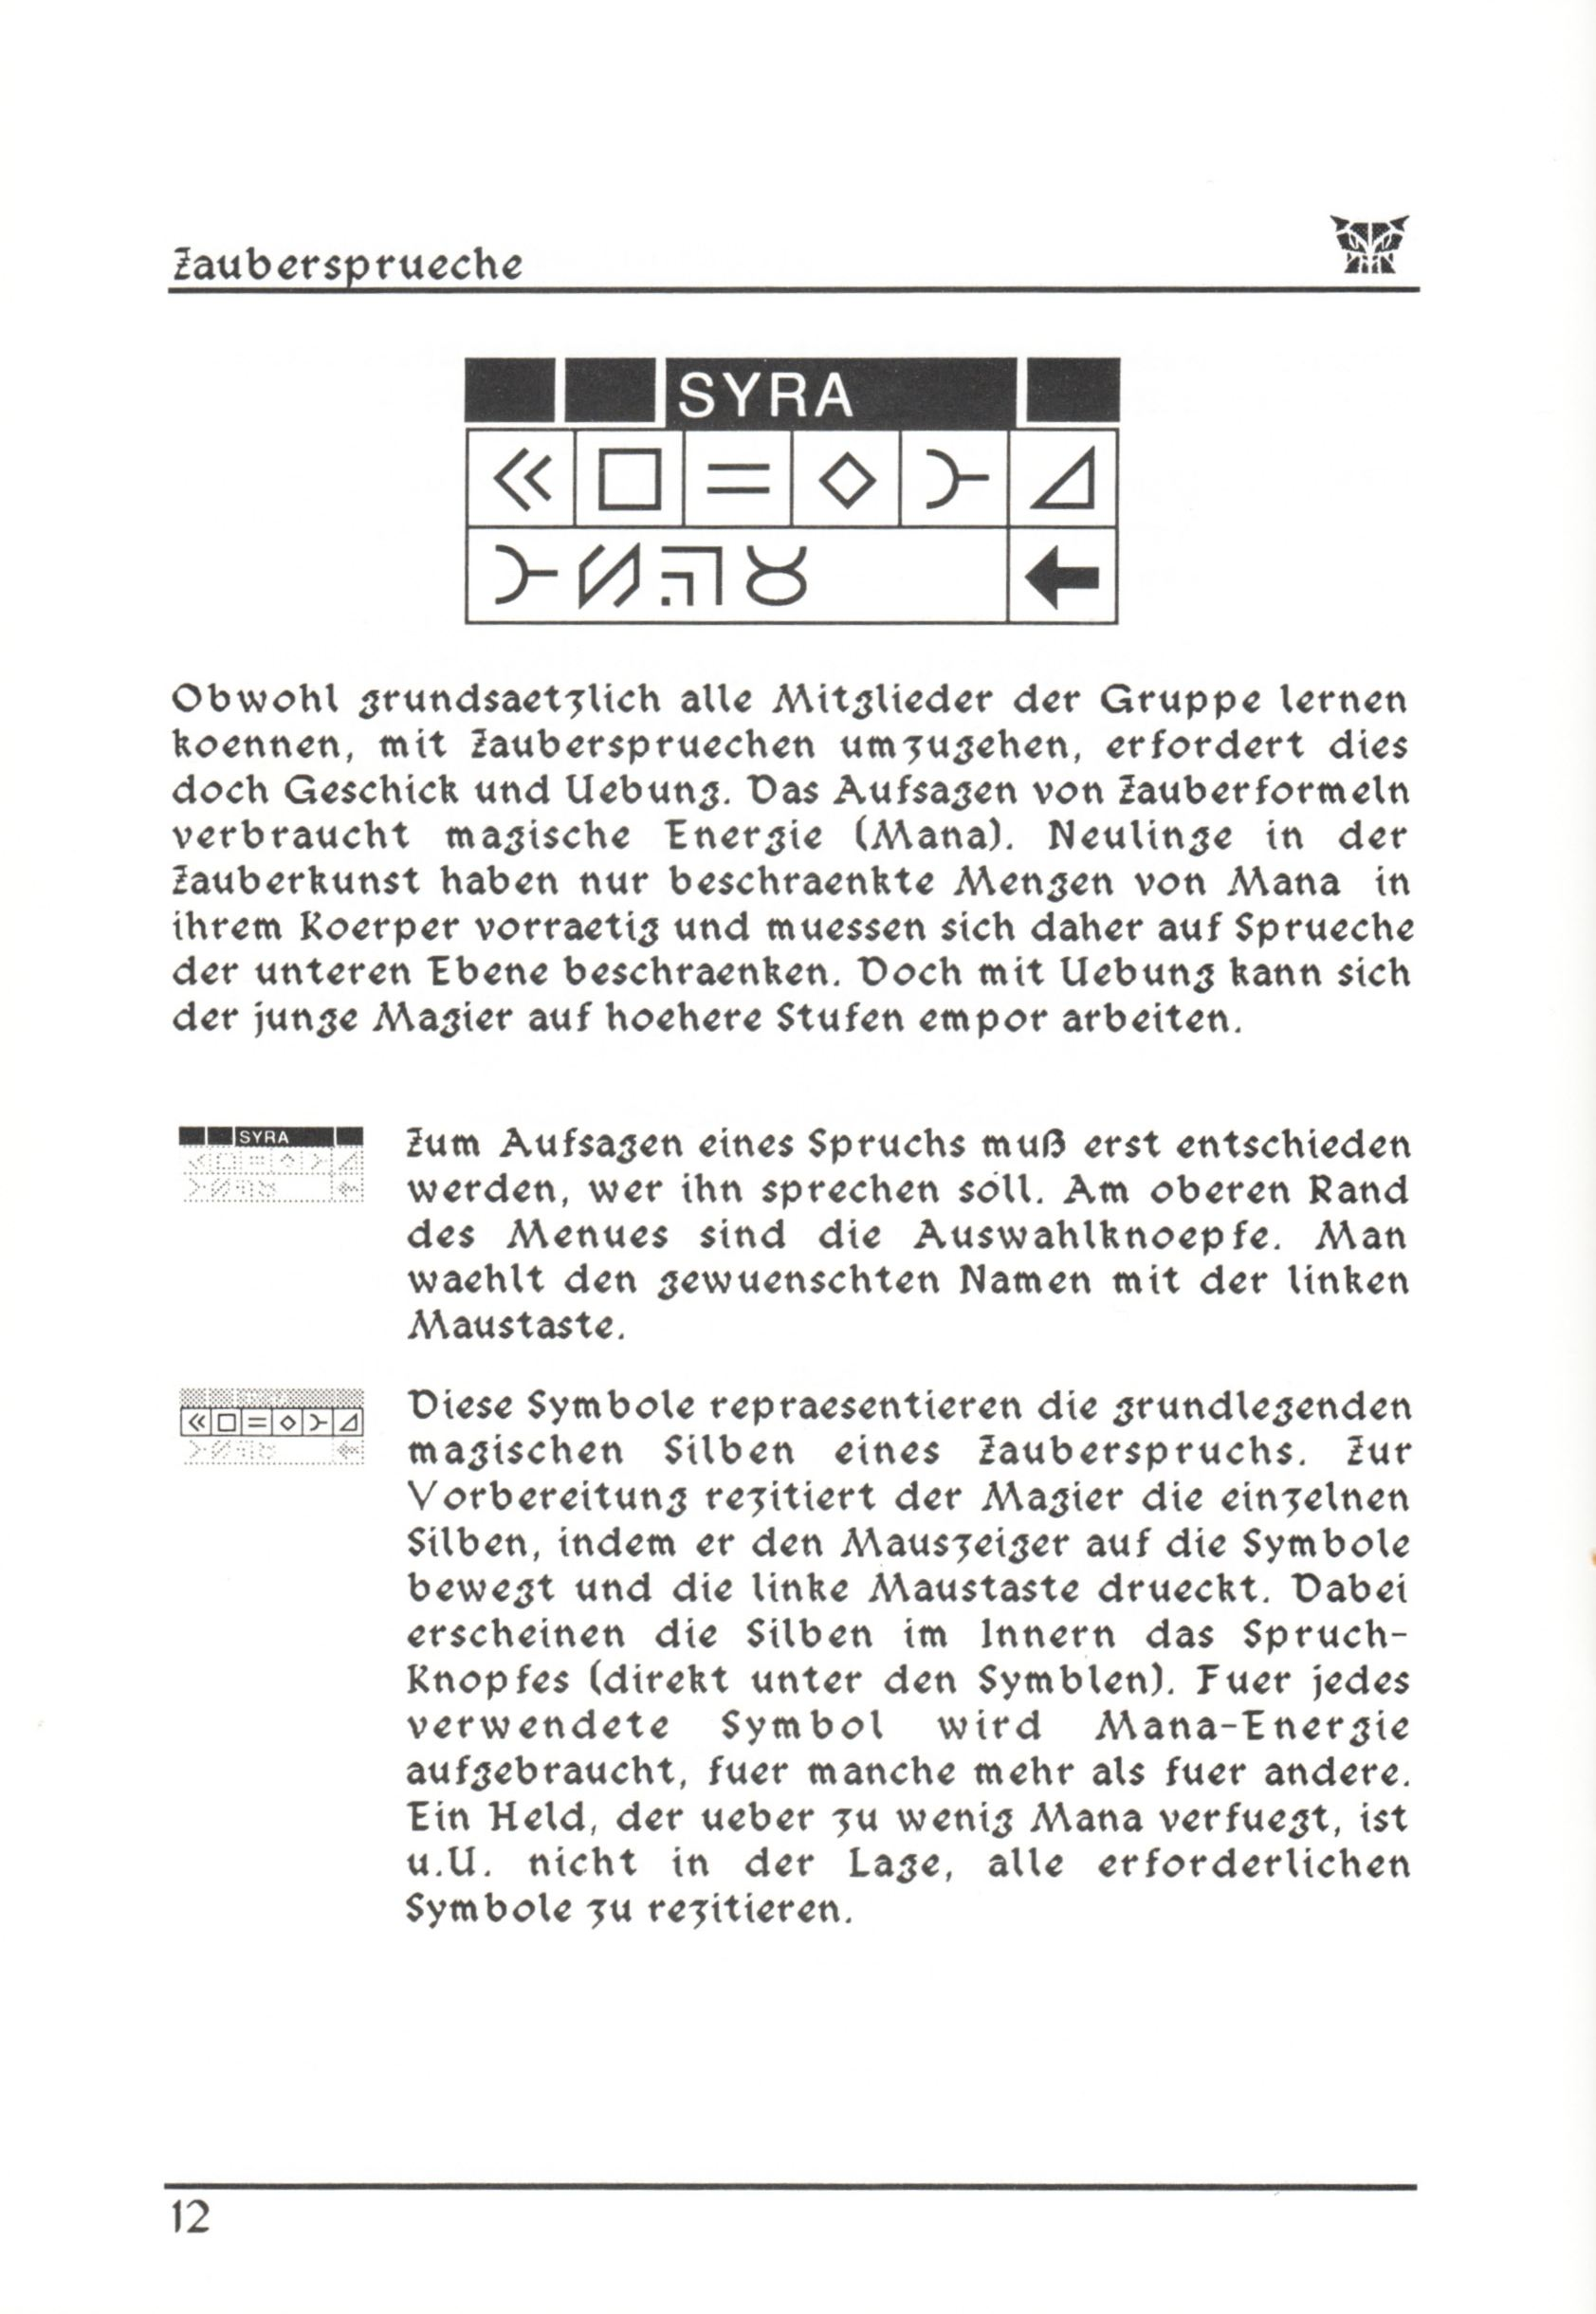 Game - Dungeon Master - DE - PC - Psygnosis - Manual - Page 038 - Scan